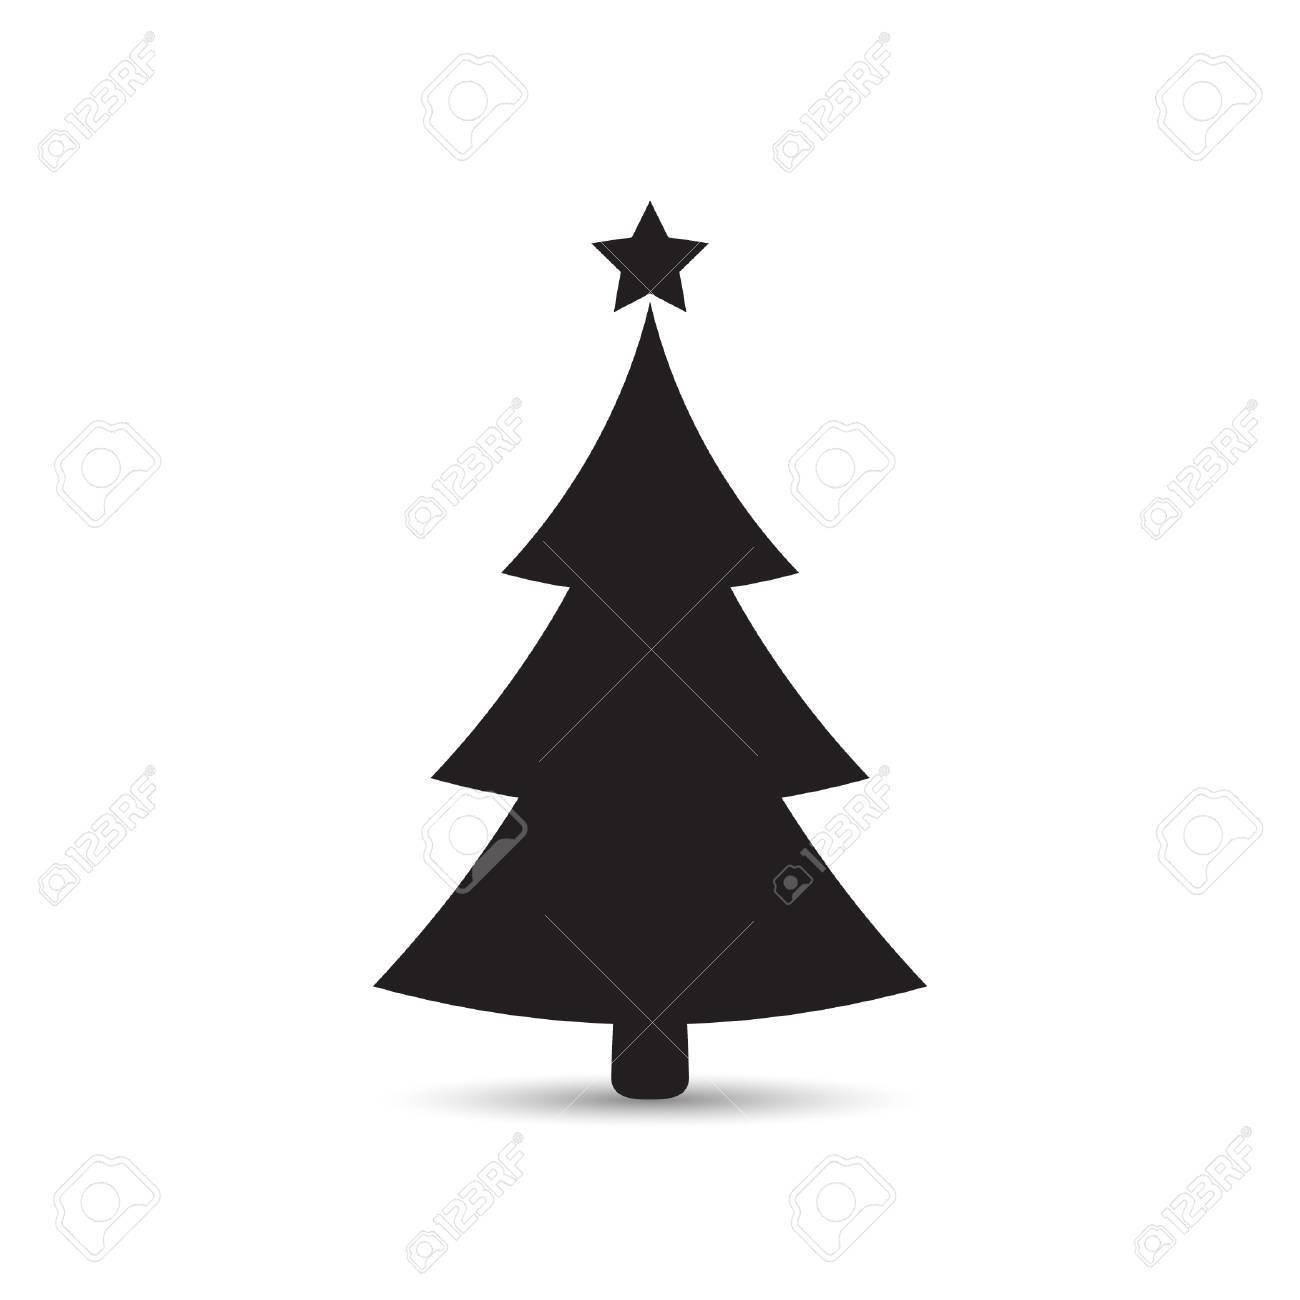 Christmas Tree Flat Icon Vector Simple Design With Shadow Black